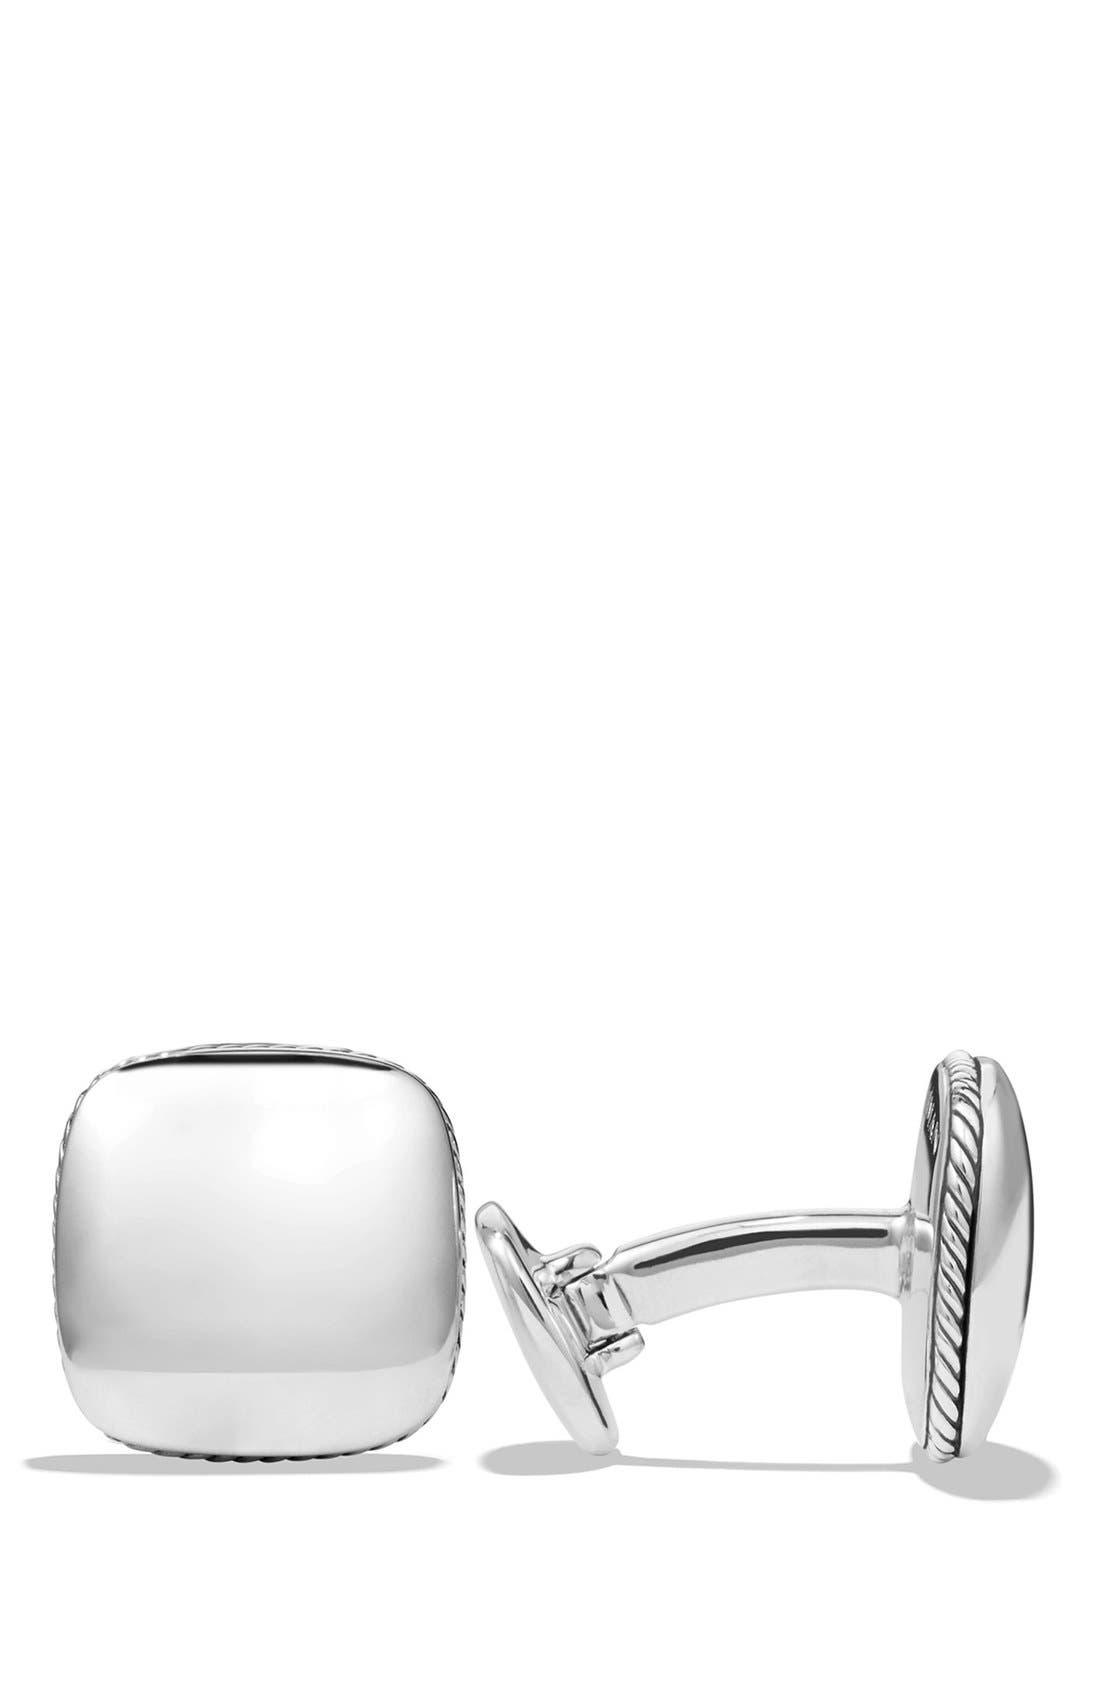 Main Image - David Yurman 'Streamline' Cuff links